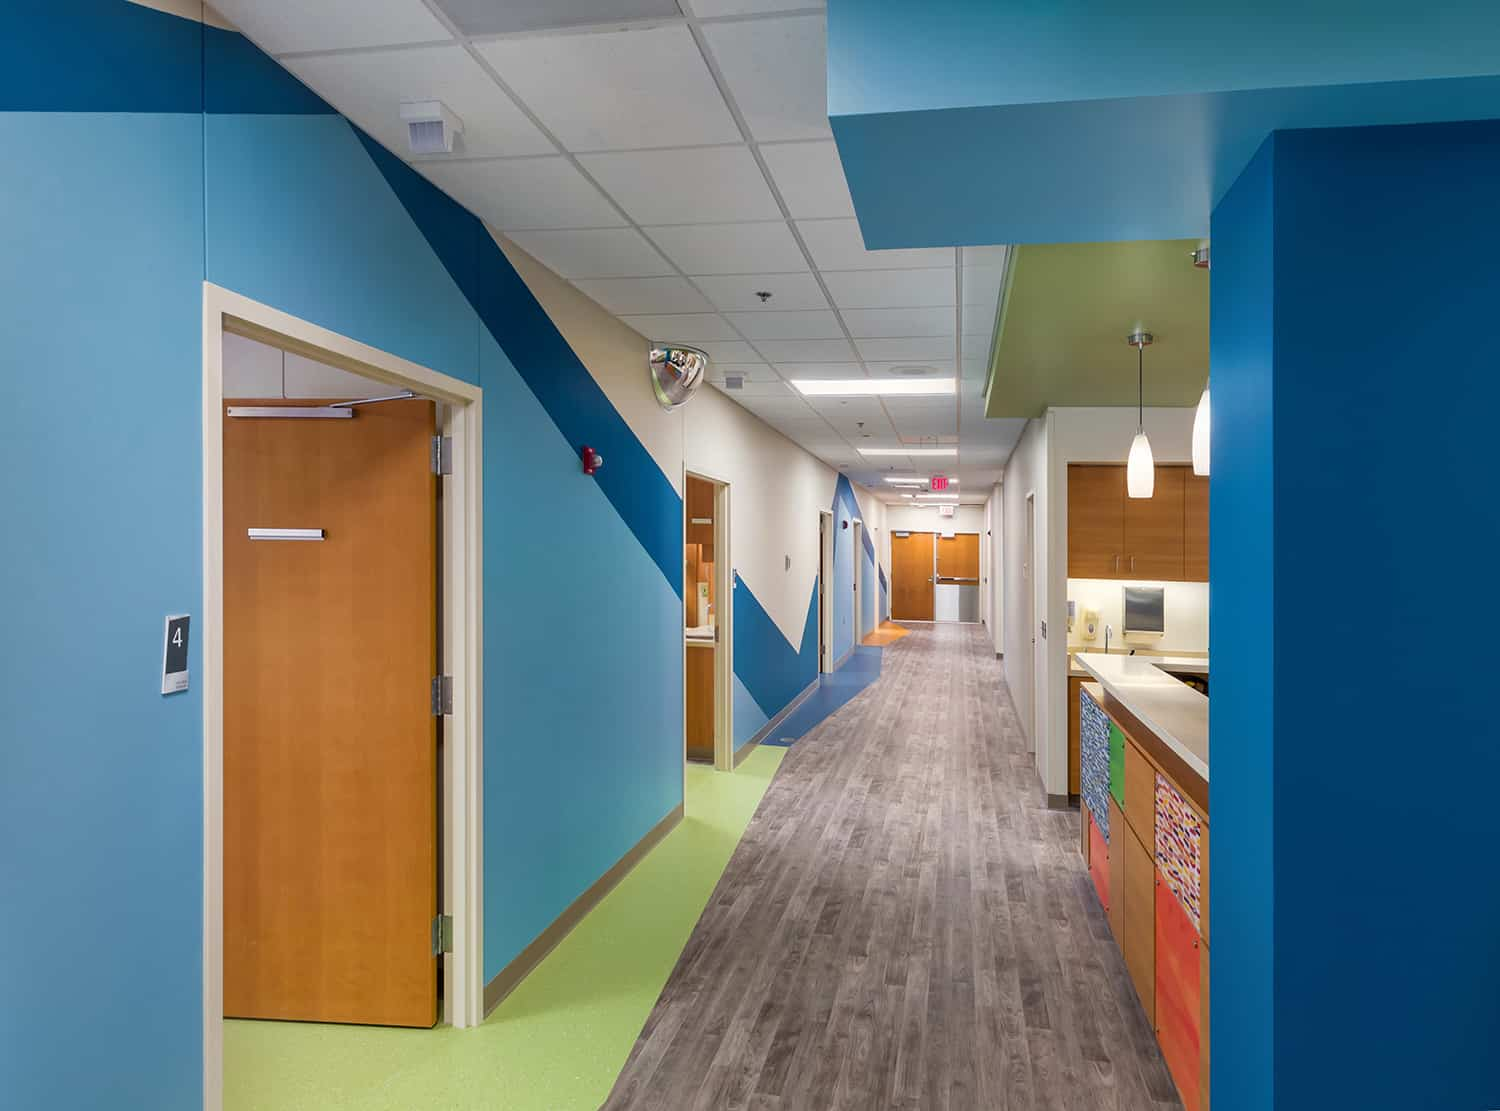 Pediatric unit corridor with a blue wall theme and view to the nurses station.